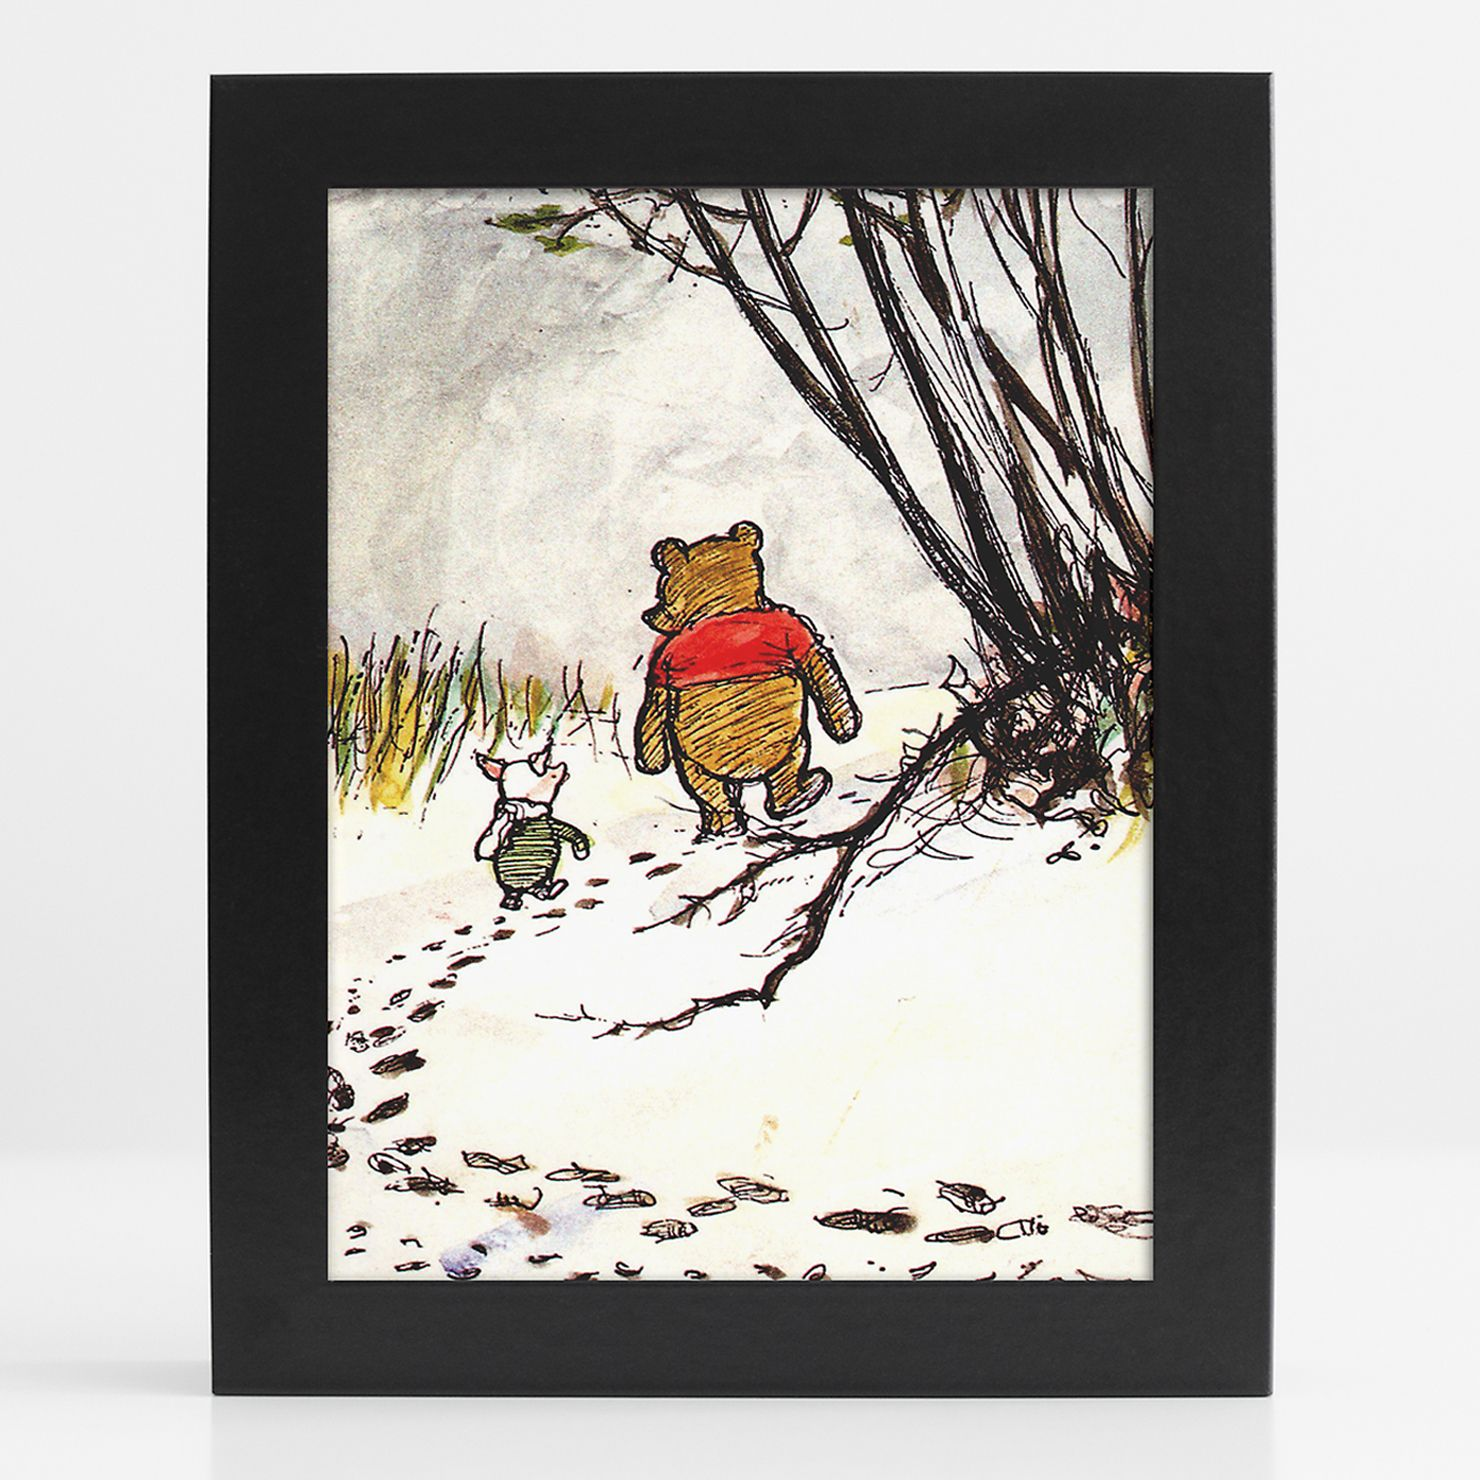 Winnie The Pooh - I'm Not Lost For I Know Where I Am, Framed Print, 15x20cm